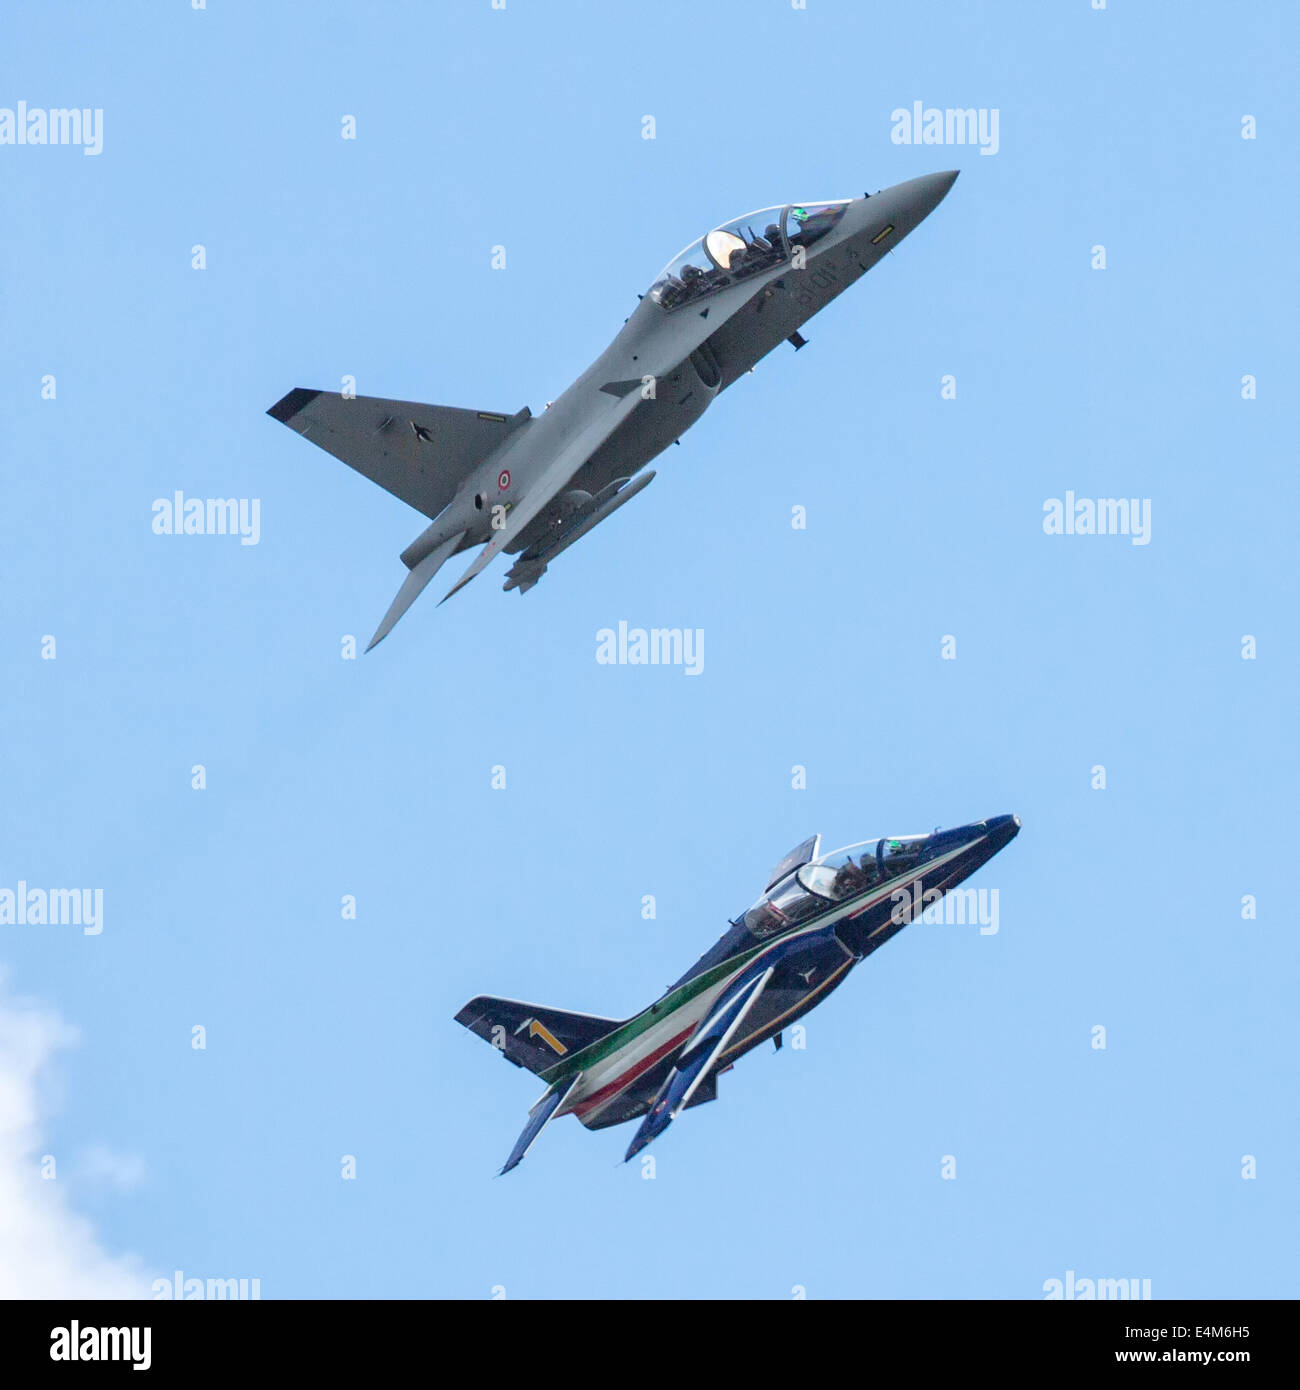 Farnborough, Hampshire, UK. 14th July, 2014. The first day of the 2014 Farnborough International Airshow saw a relatively - Stock Image